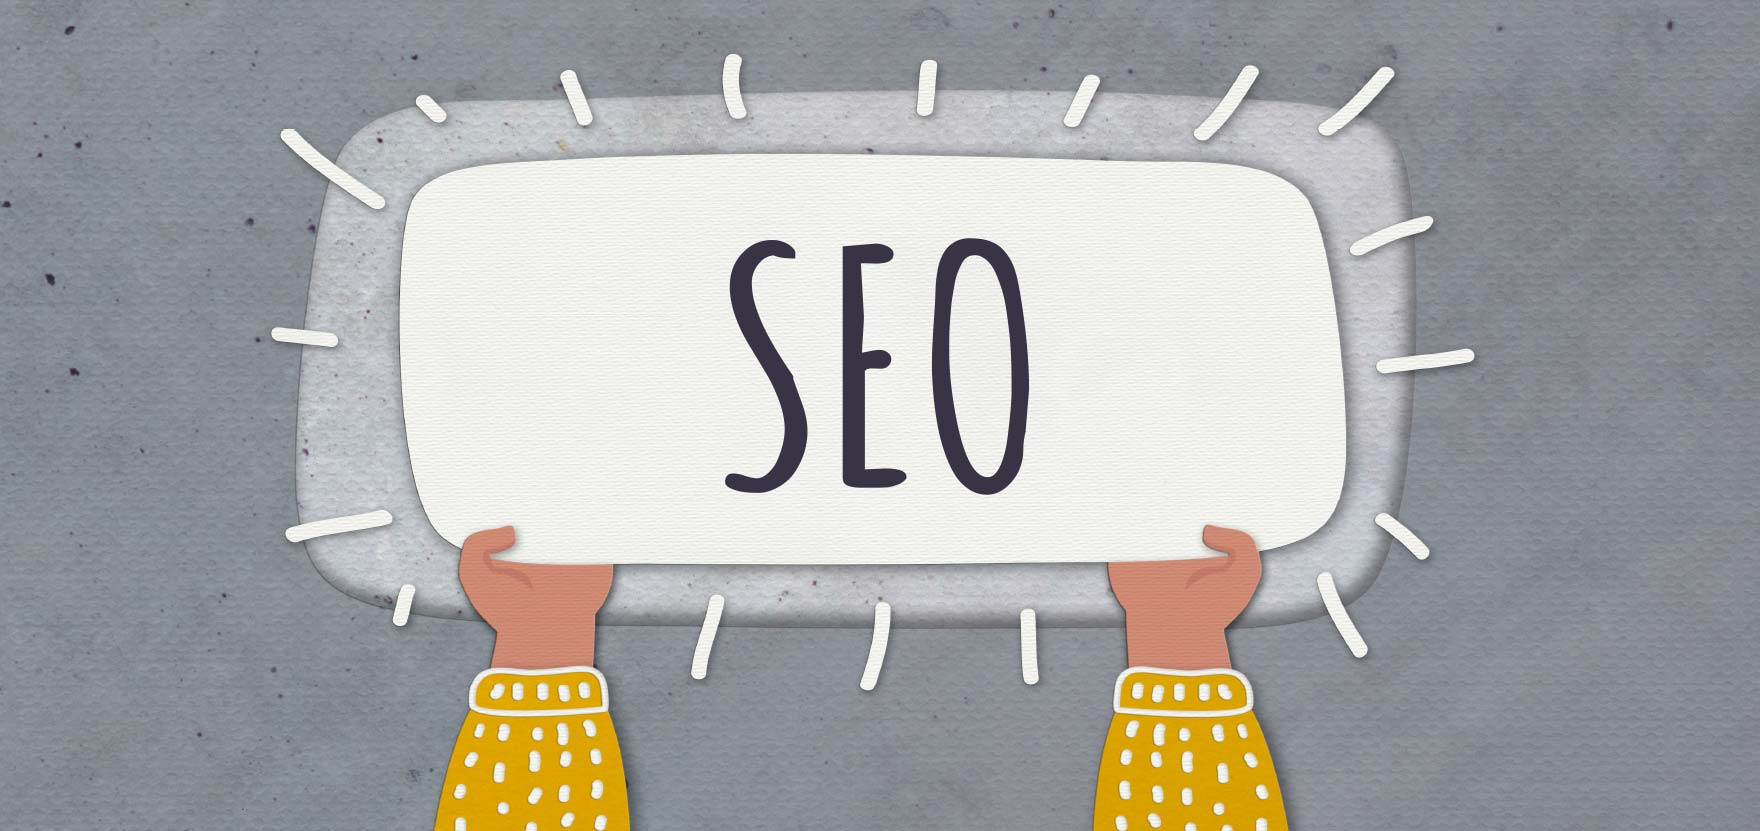 Search engine optimisation (SEO) services